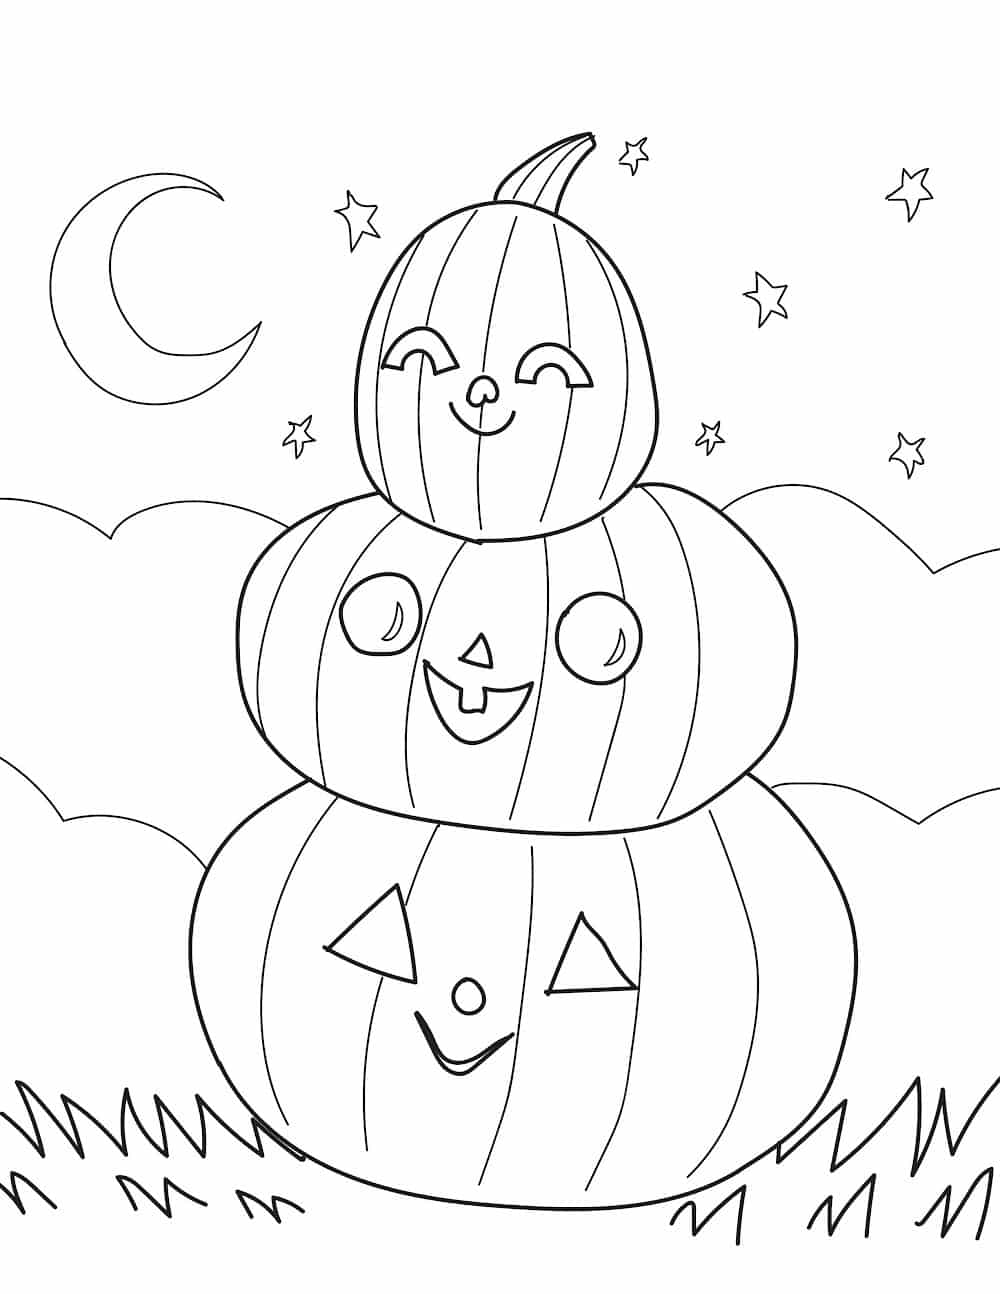 These free printable fall coloring pages for kids feature a trio of happy pumpkins just waiting for your child's artistic touch!